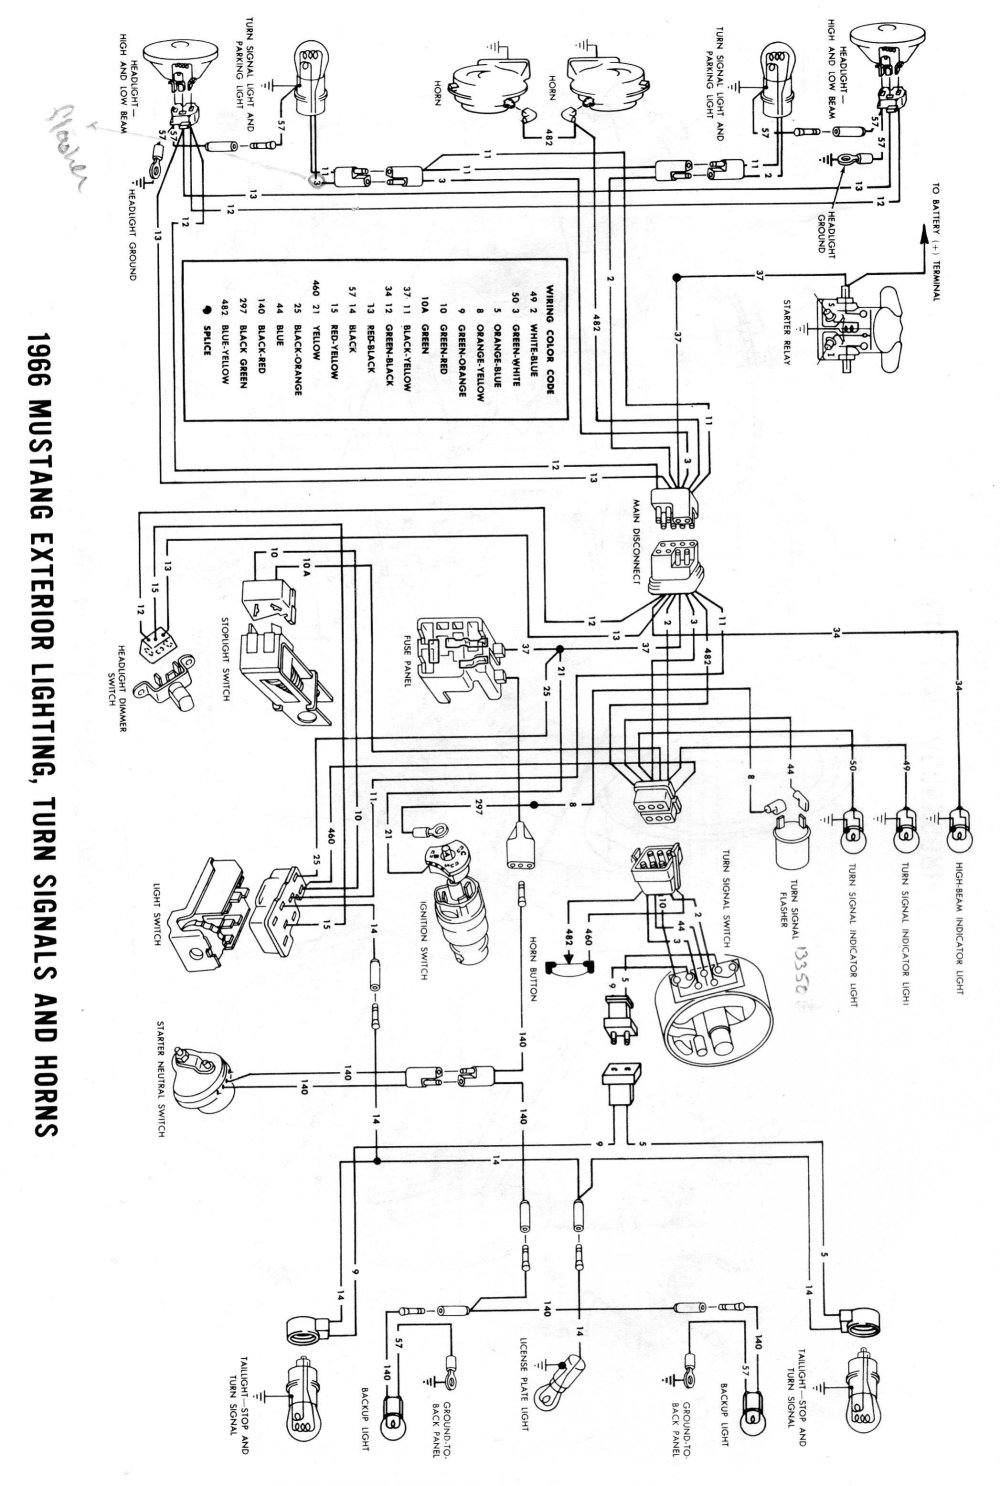 medium resolution of 65 mustang dash wiring diagram free download wiring diagram toolbox 1966 mustang dash wiring diagram free